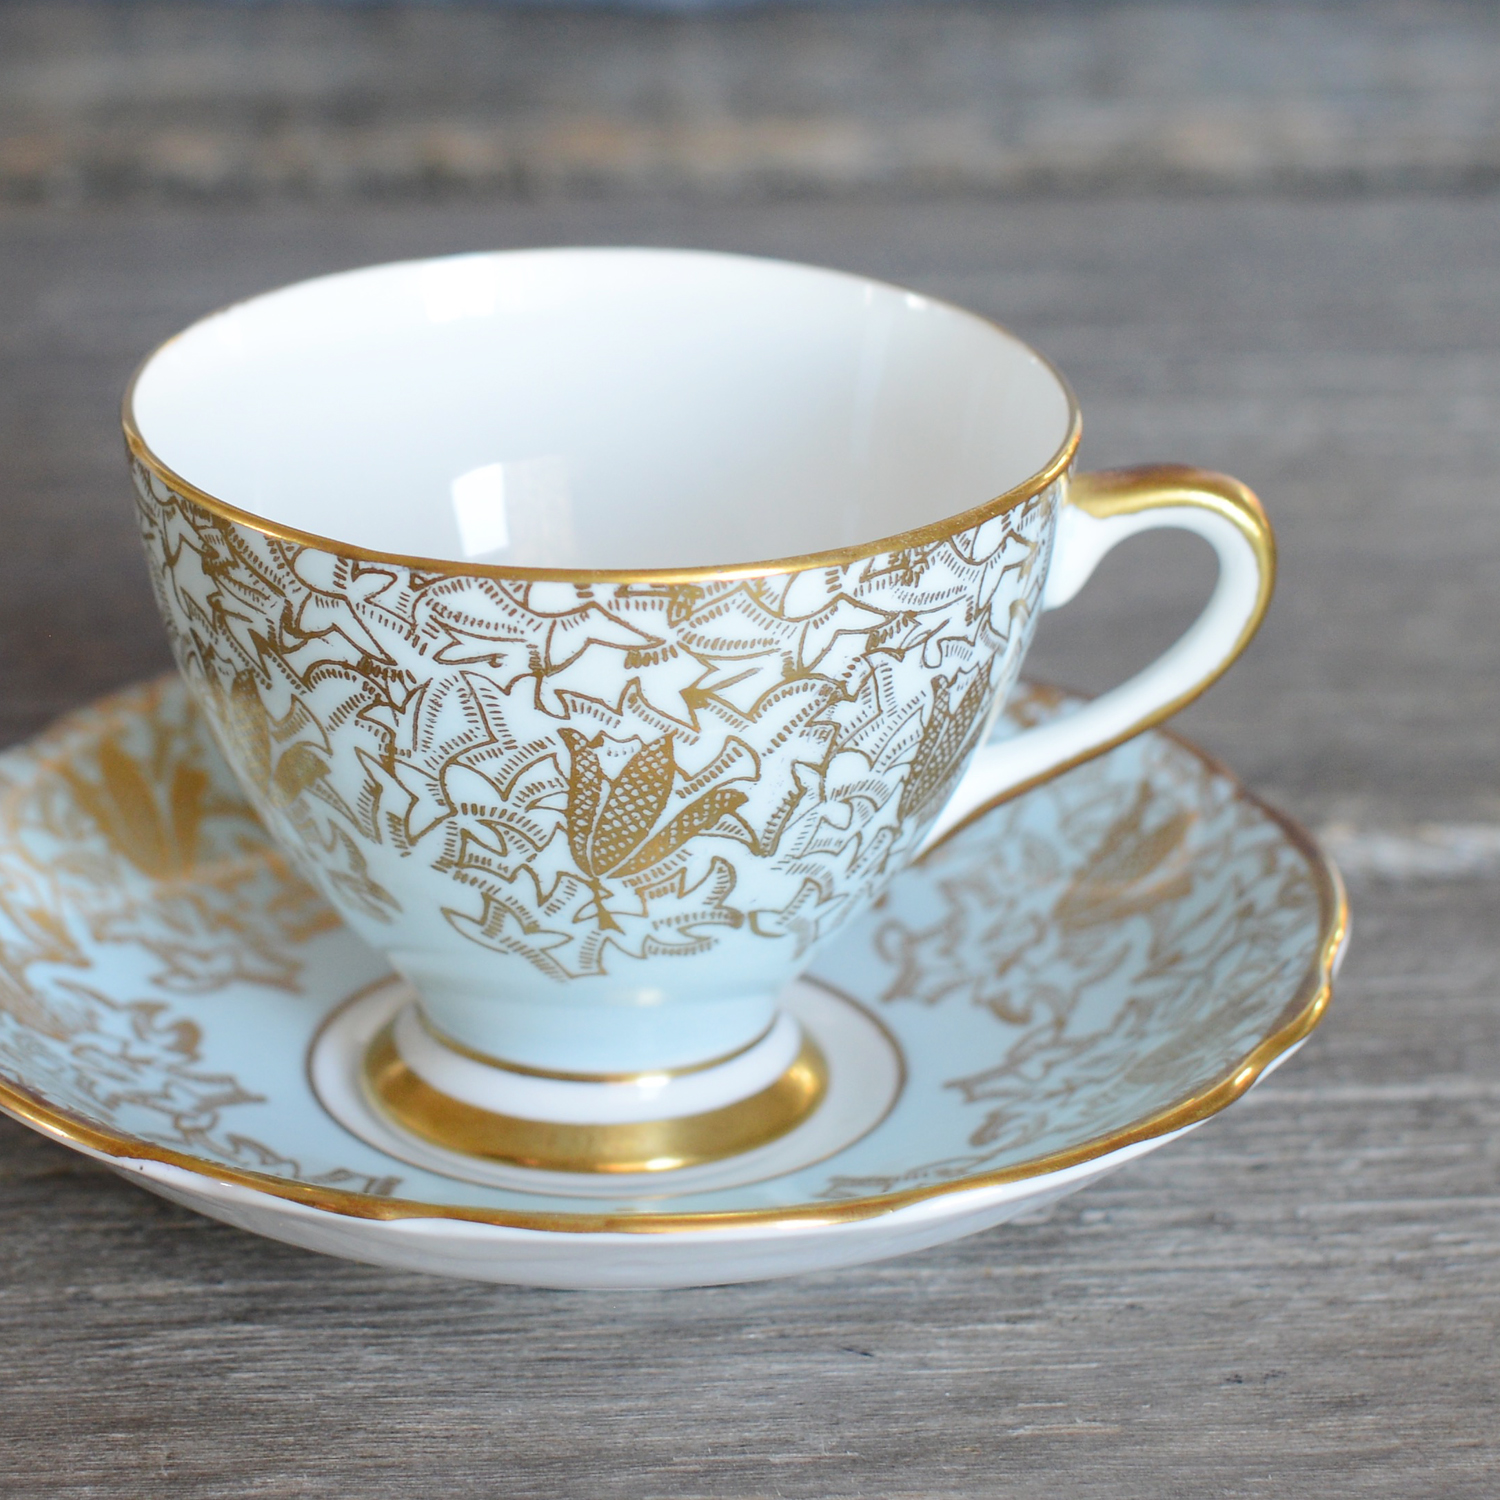 gladstone tea cup and saucer - 4 available